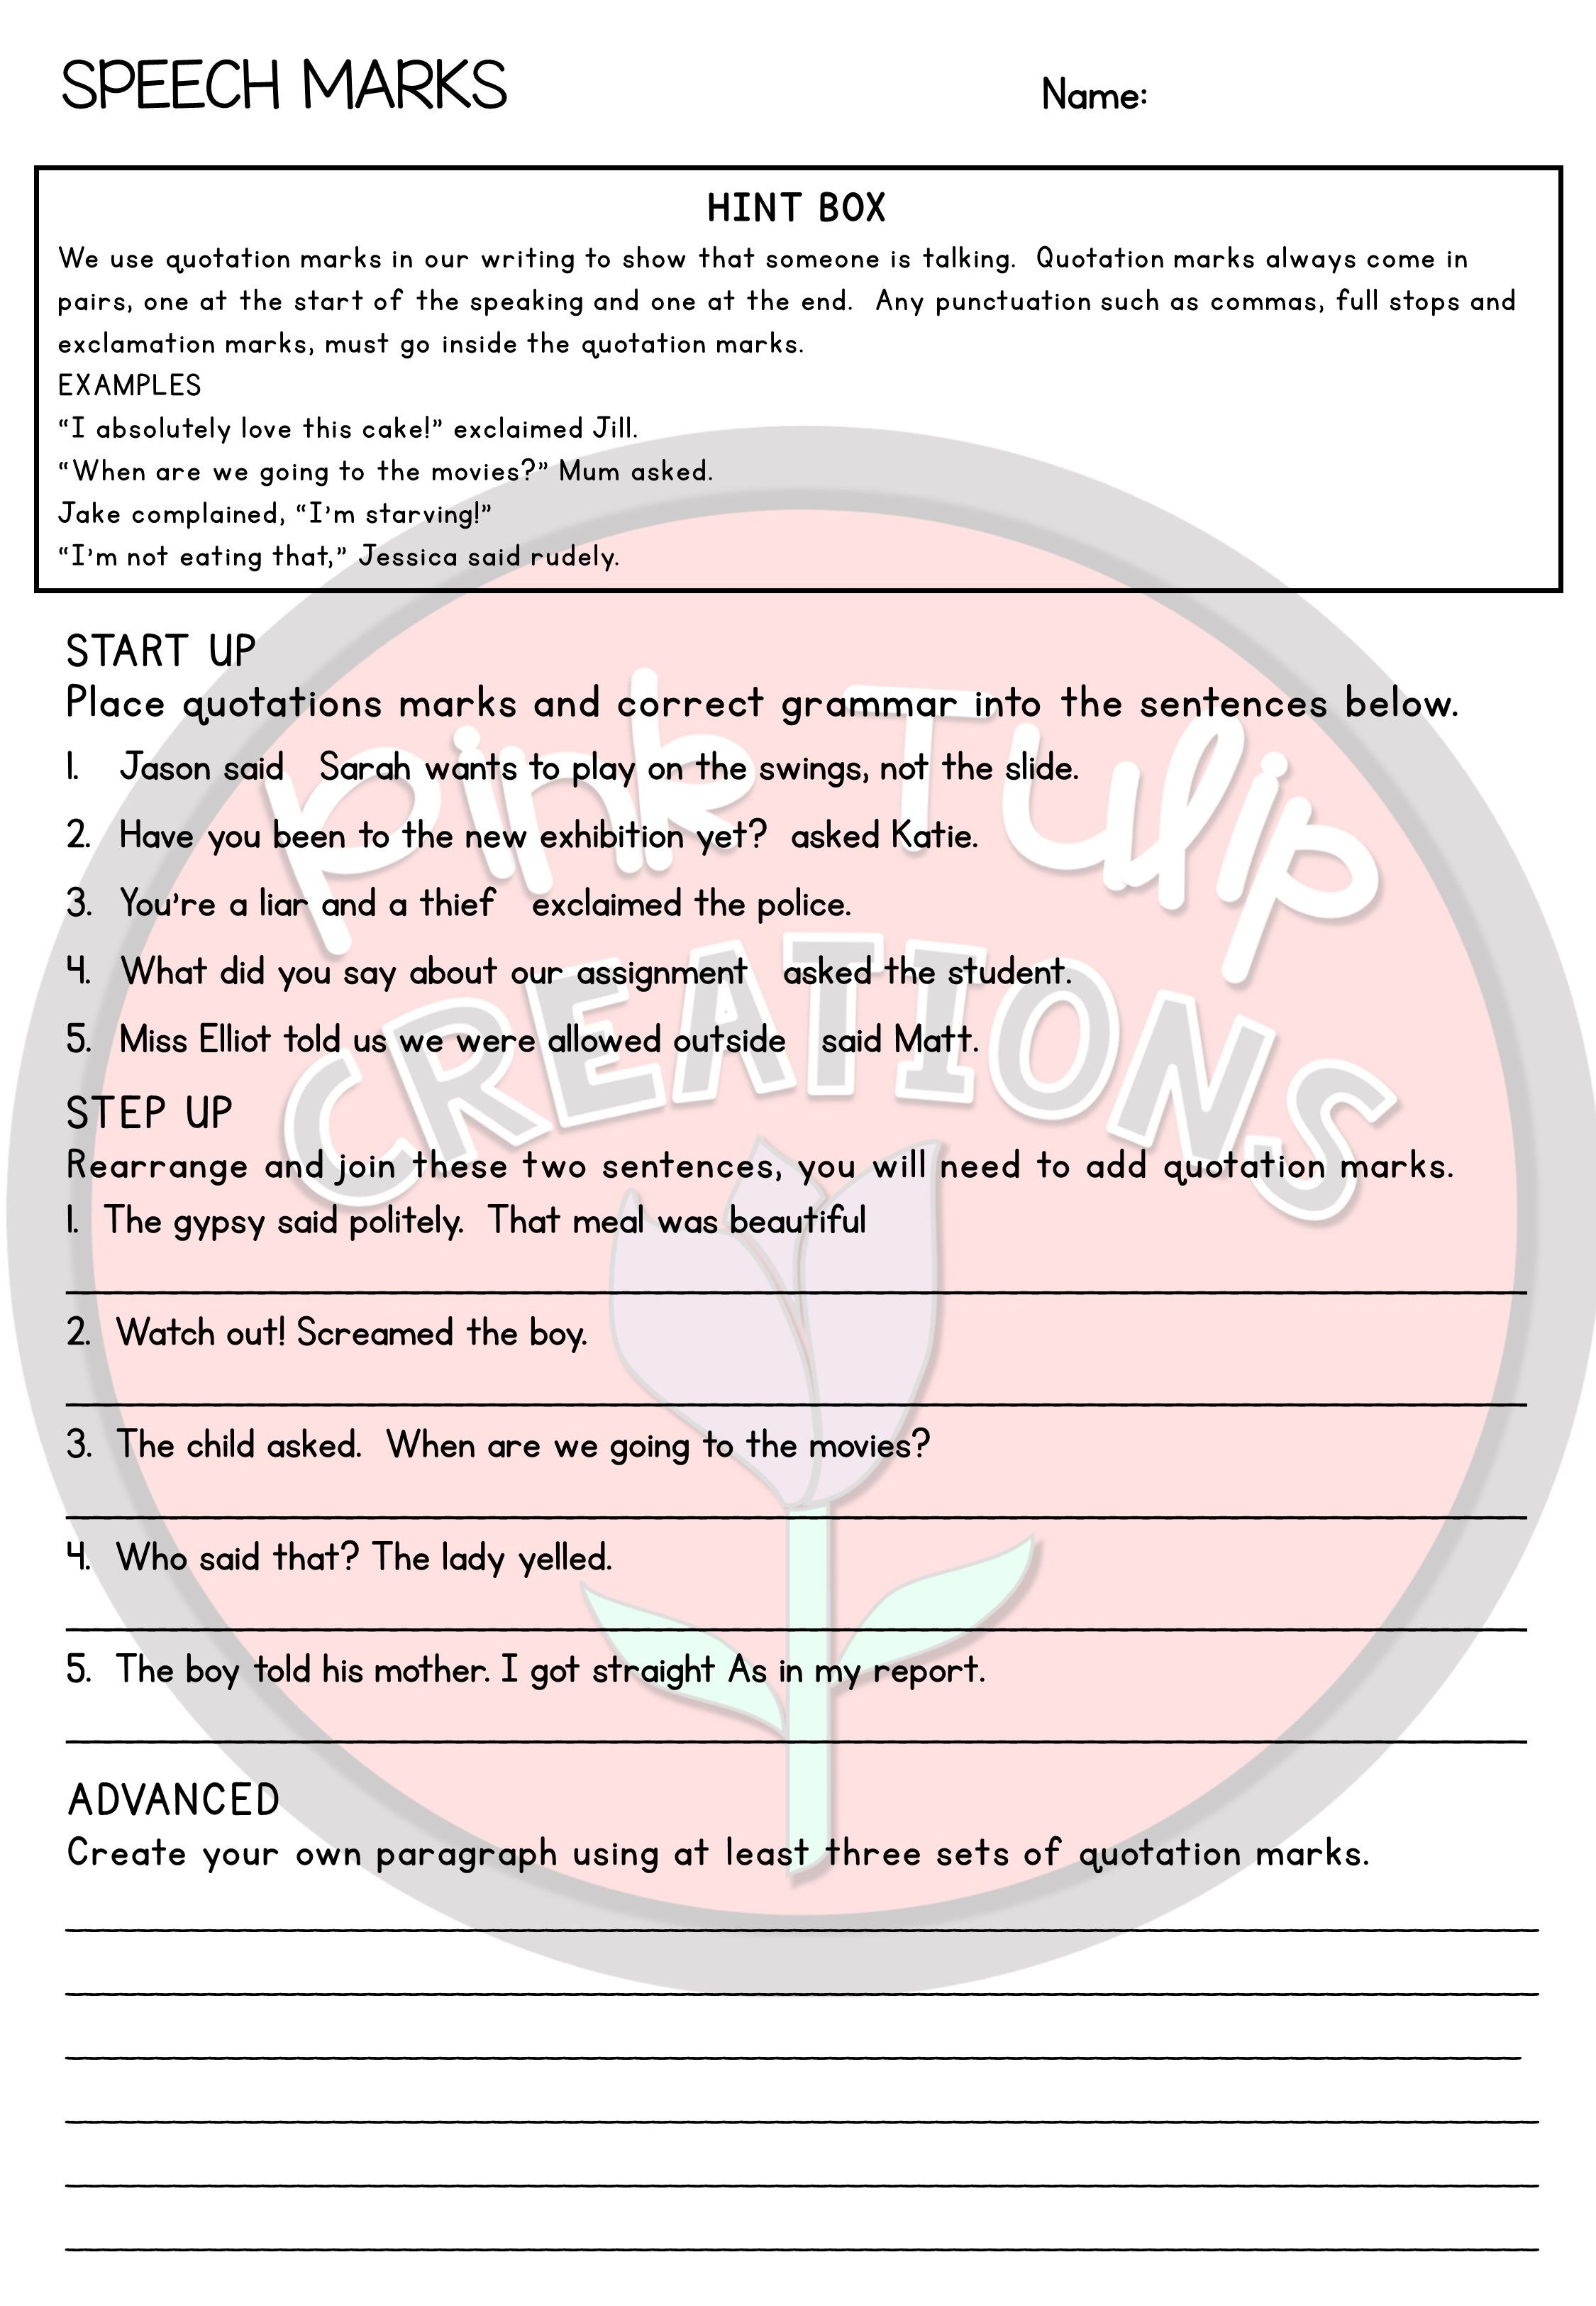 Grammar Worksheet Pack With Images